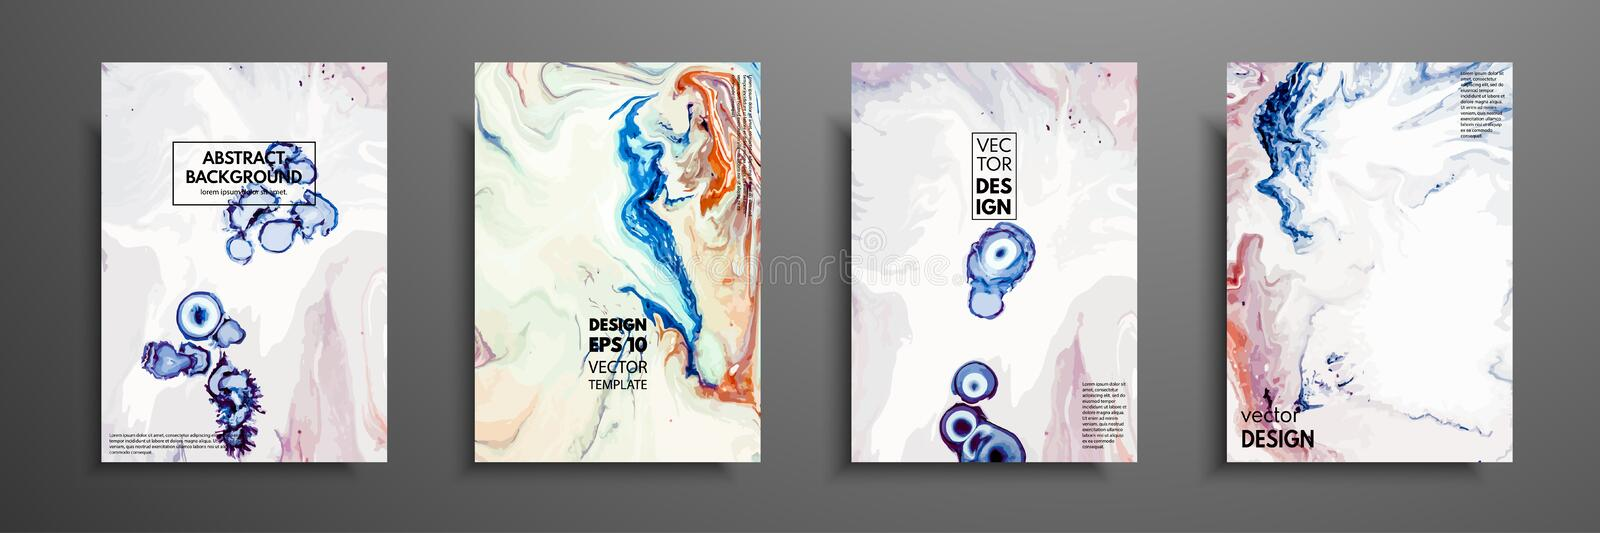 Mixture of acrylic paints. Design template with fluid art. Vector banner with colorful texture. Applicable for covers stock illustration